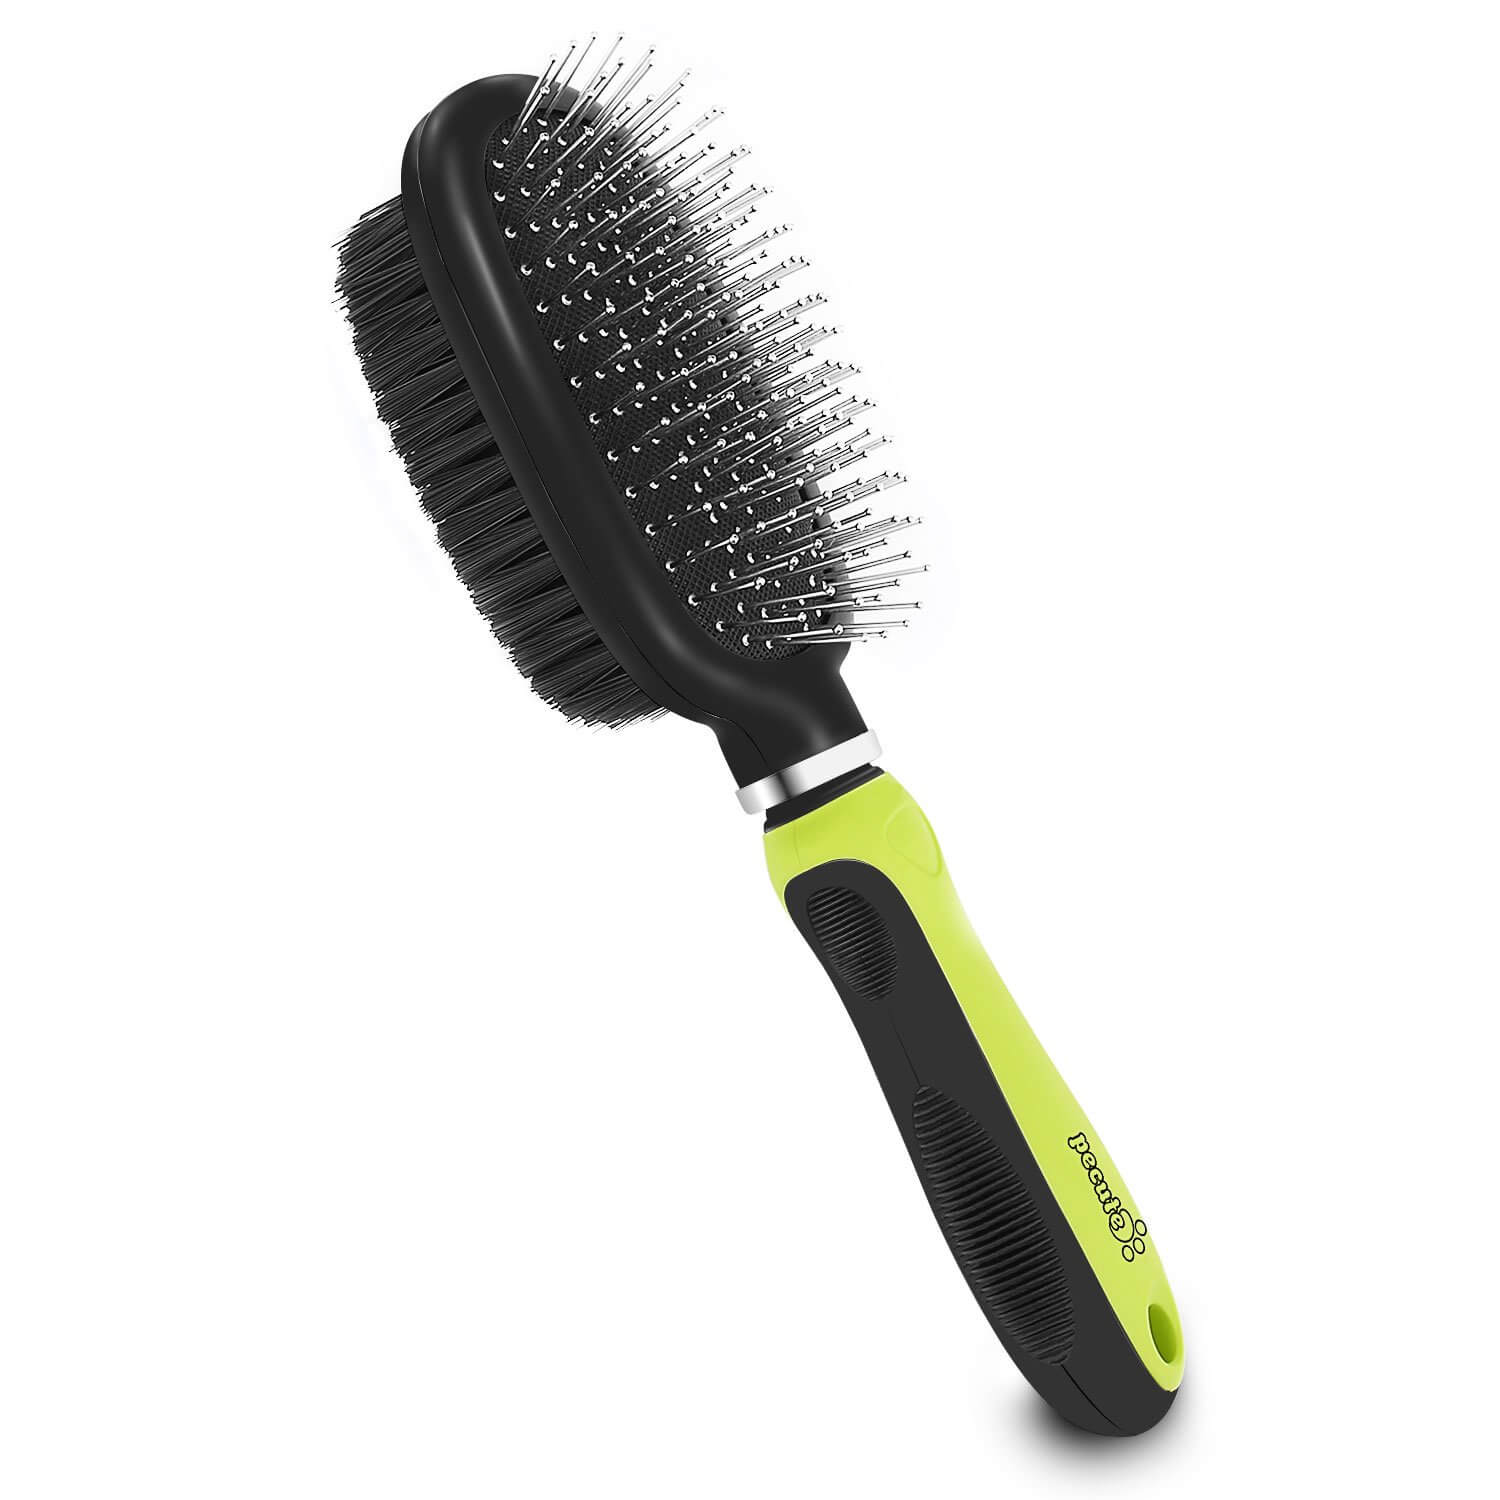 Percute grooming brush